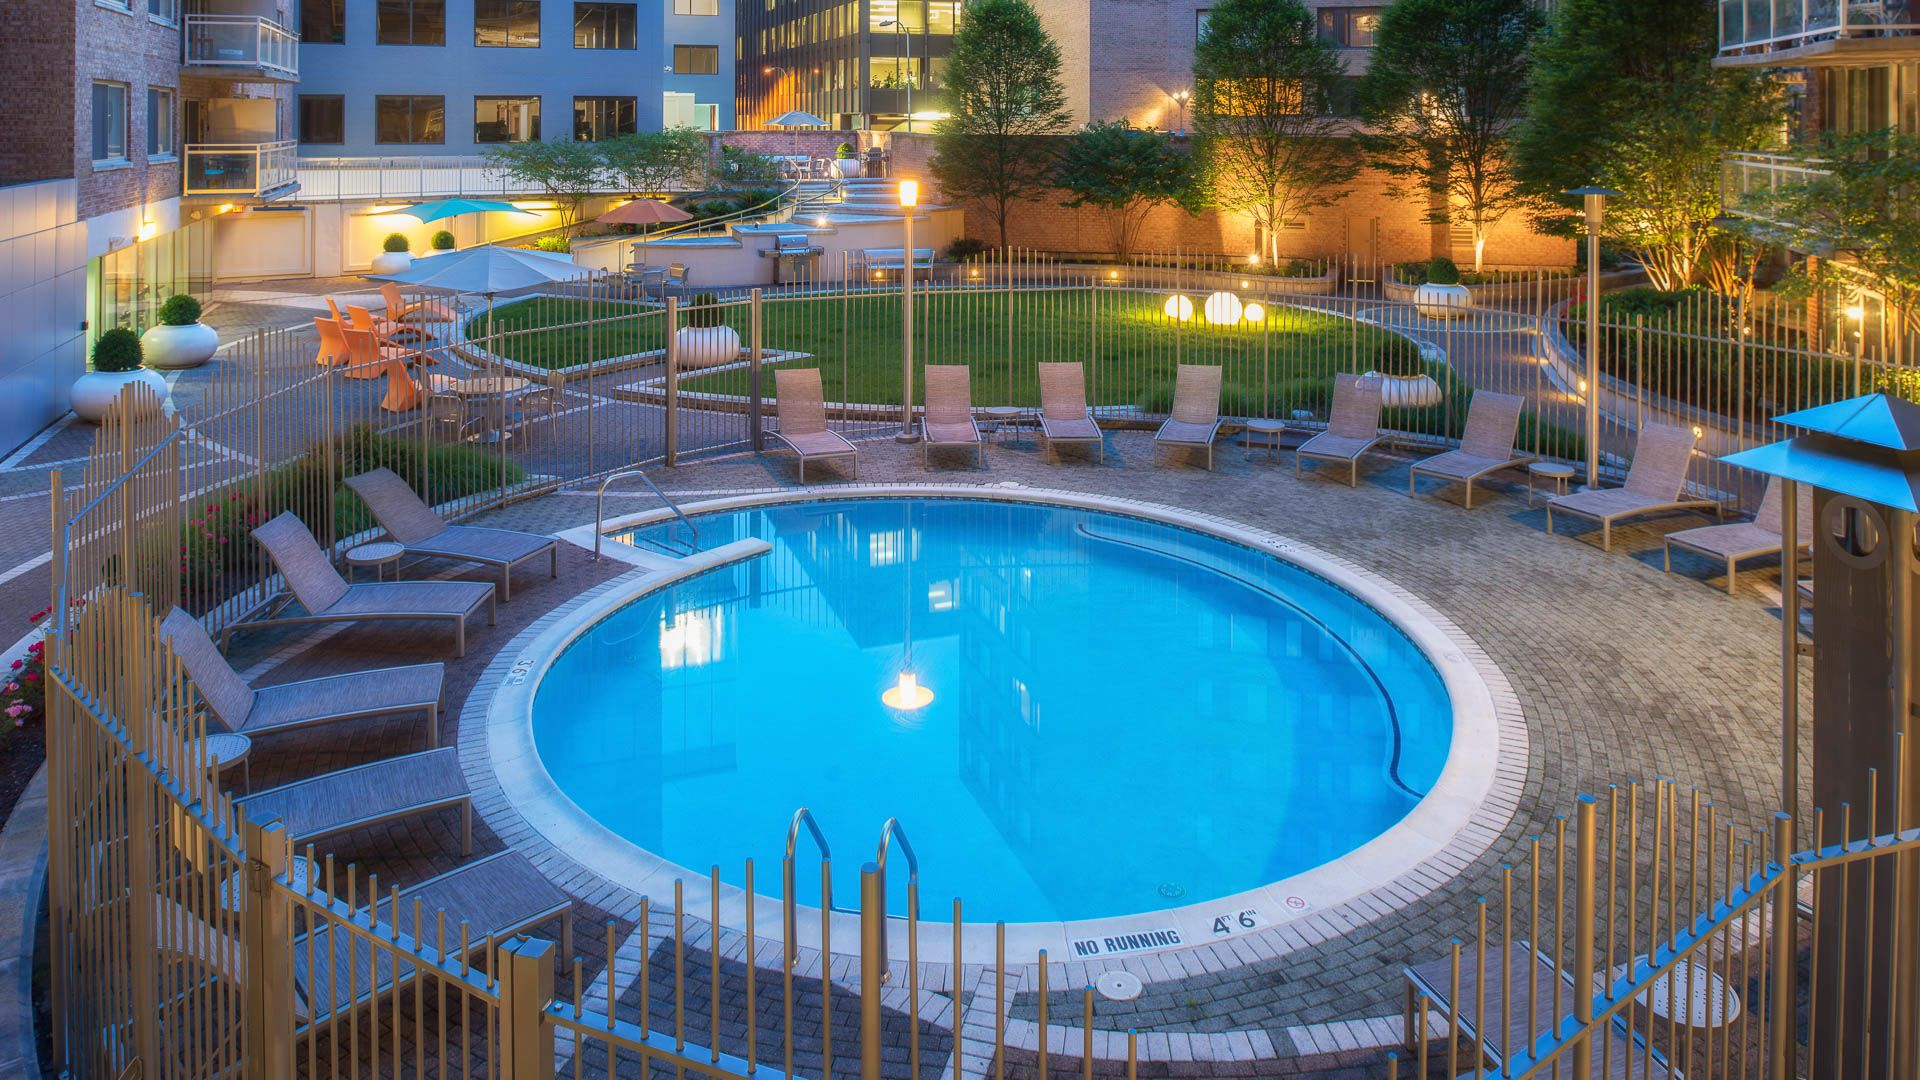 The Flats at Dupont Circle Apartments - Swimming Pool